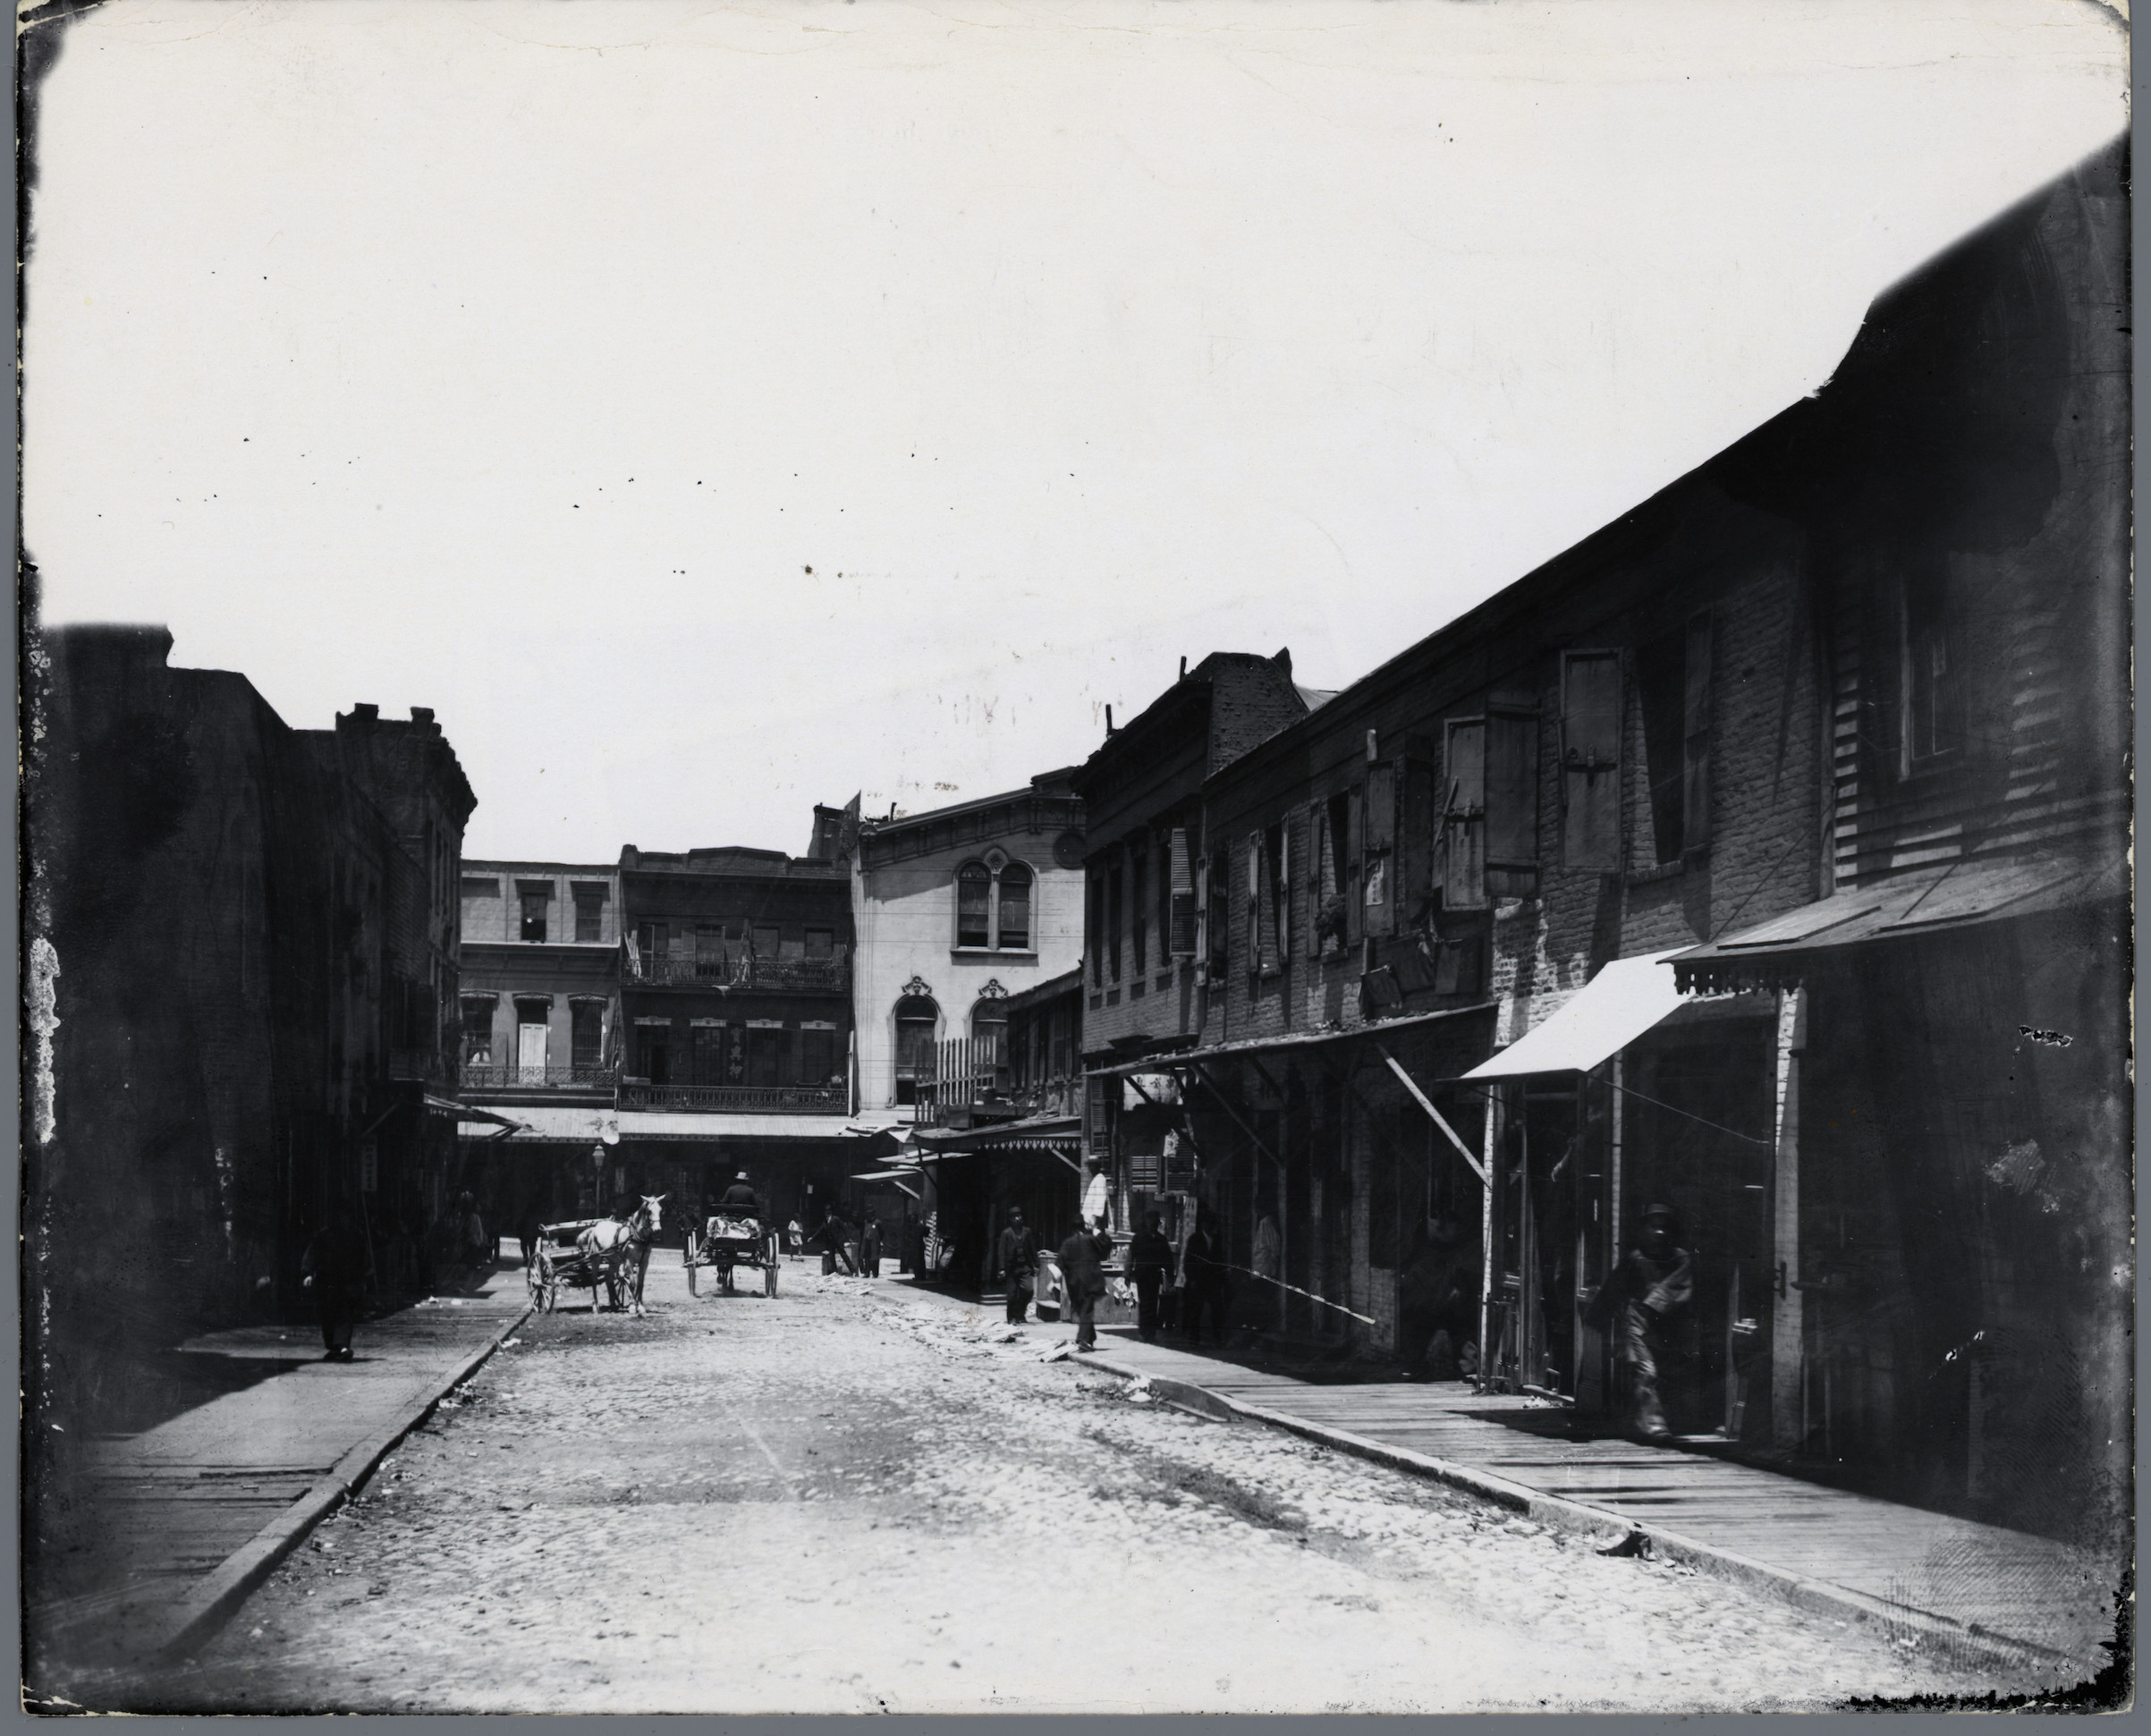 View of a Chinese immigrant community in California. Photograph circa 1900.